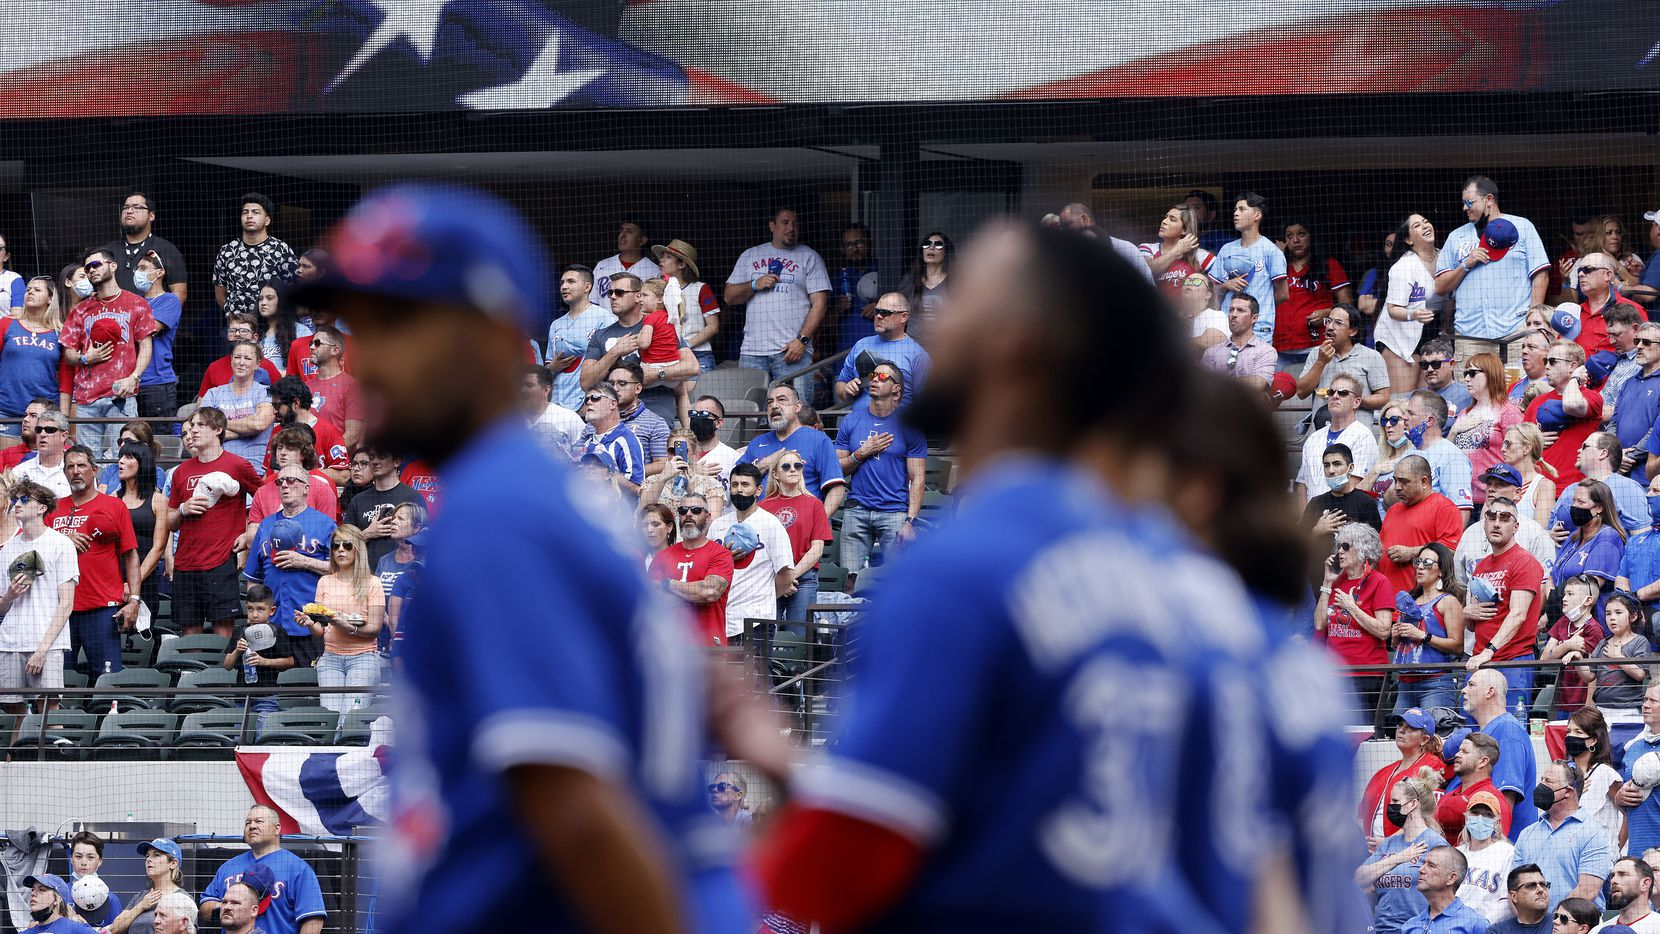 Texas Rangers fans stand and sing God Bless America in the eighth inning as the Toronto Blue Jays players watch at Globe Life Field in Arlington, Monday, April 5, 2021. The Texas Rangers were facing the Toronto Blue Jays in their home opener.